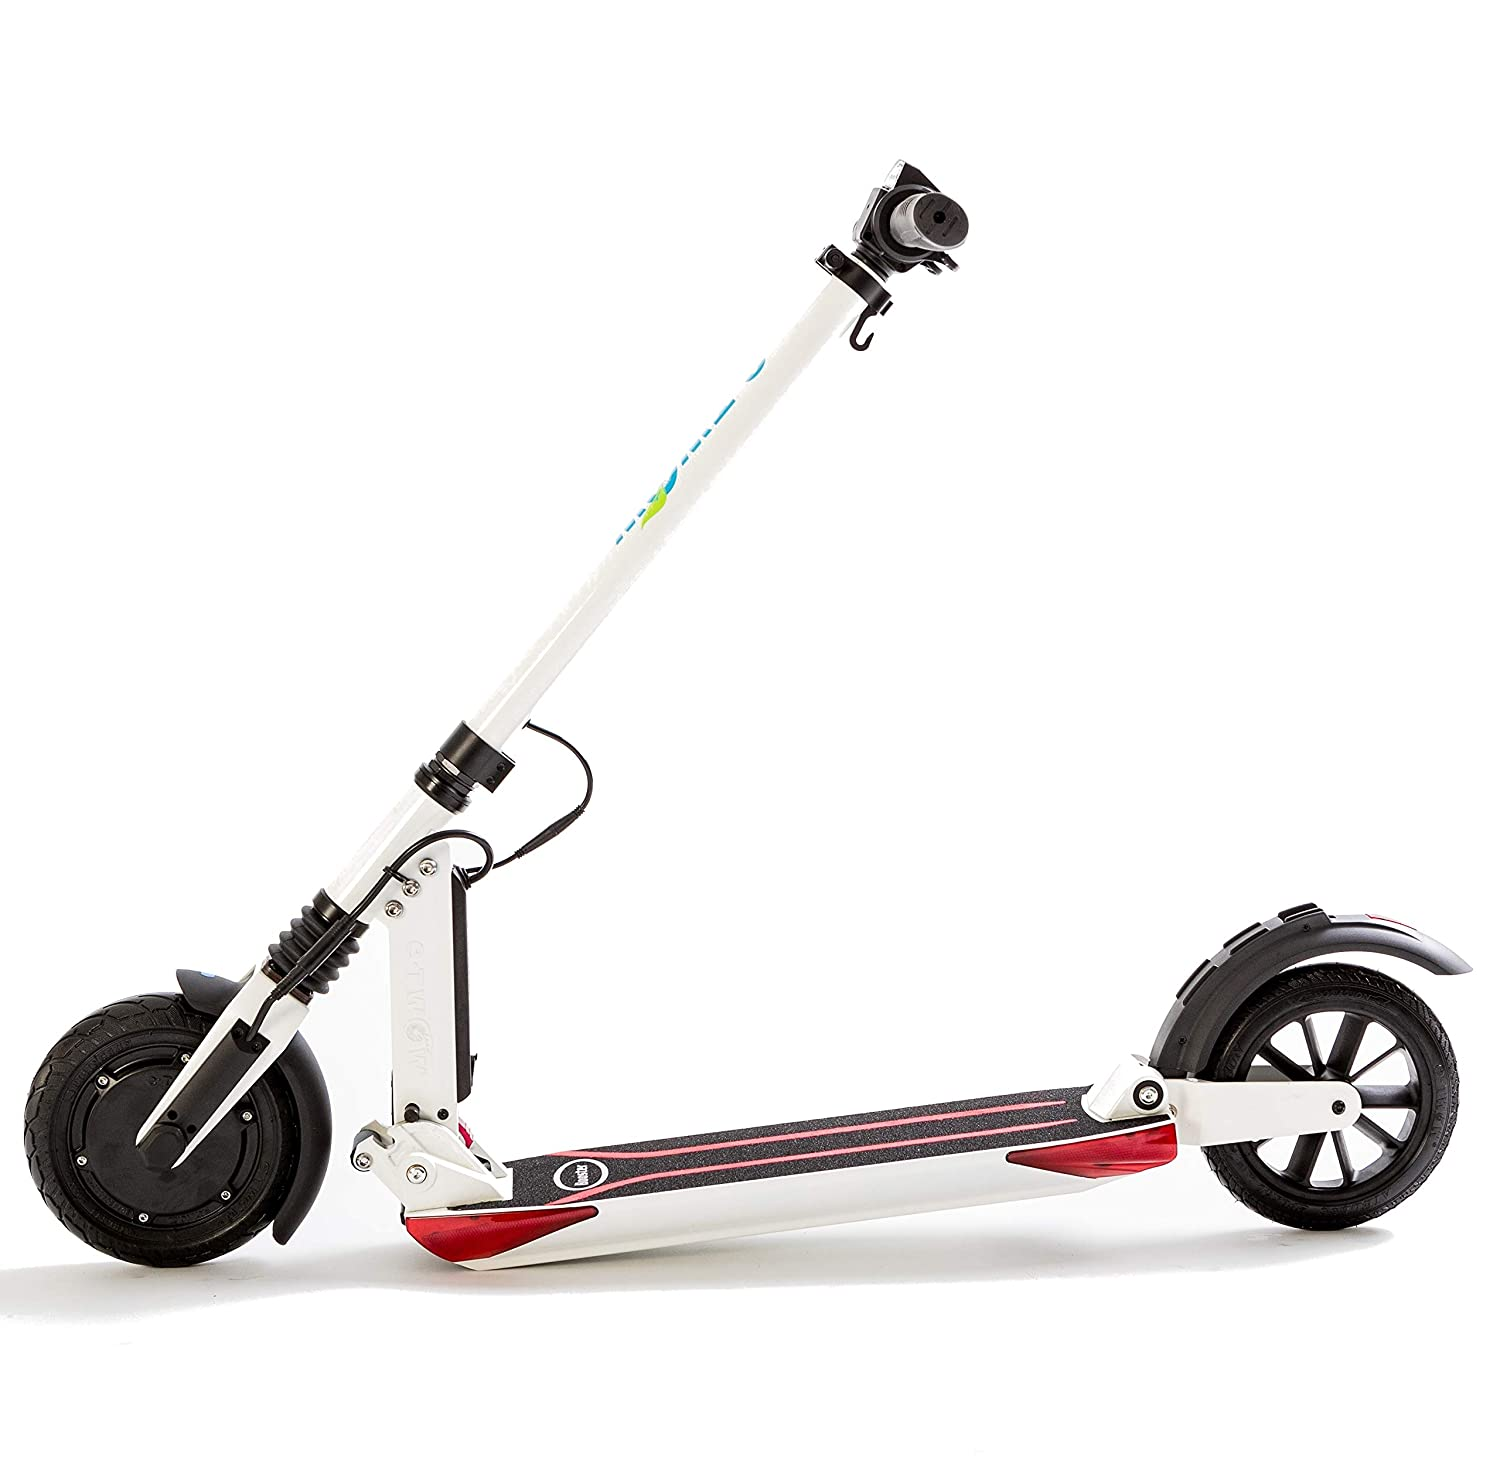 E-Twow S2 Booster S 36V 8,7Ah,Patinete eléctrico Blanco ...